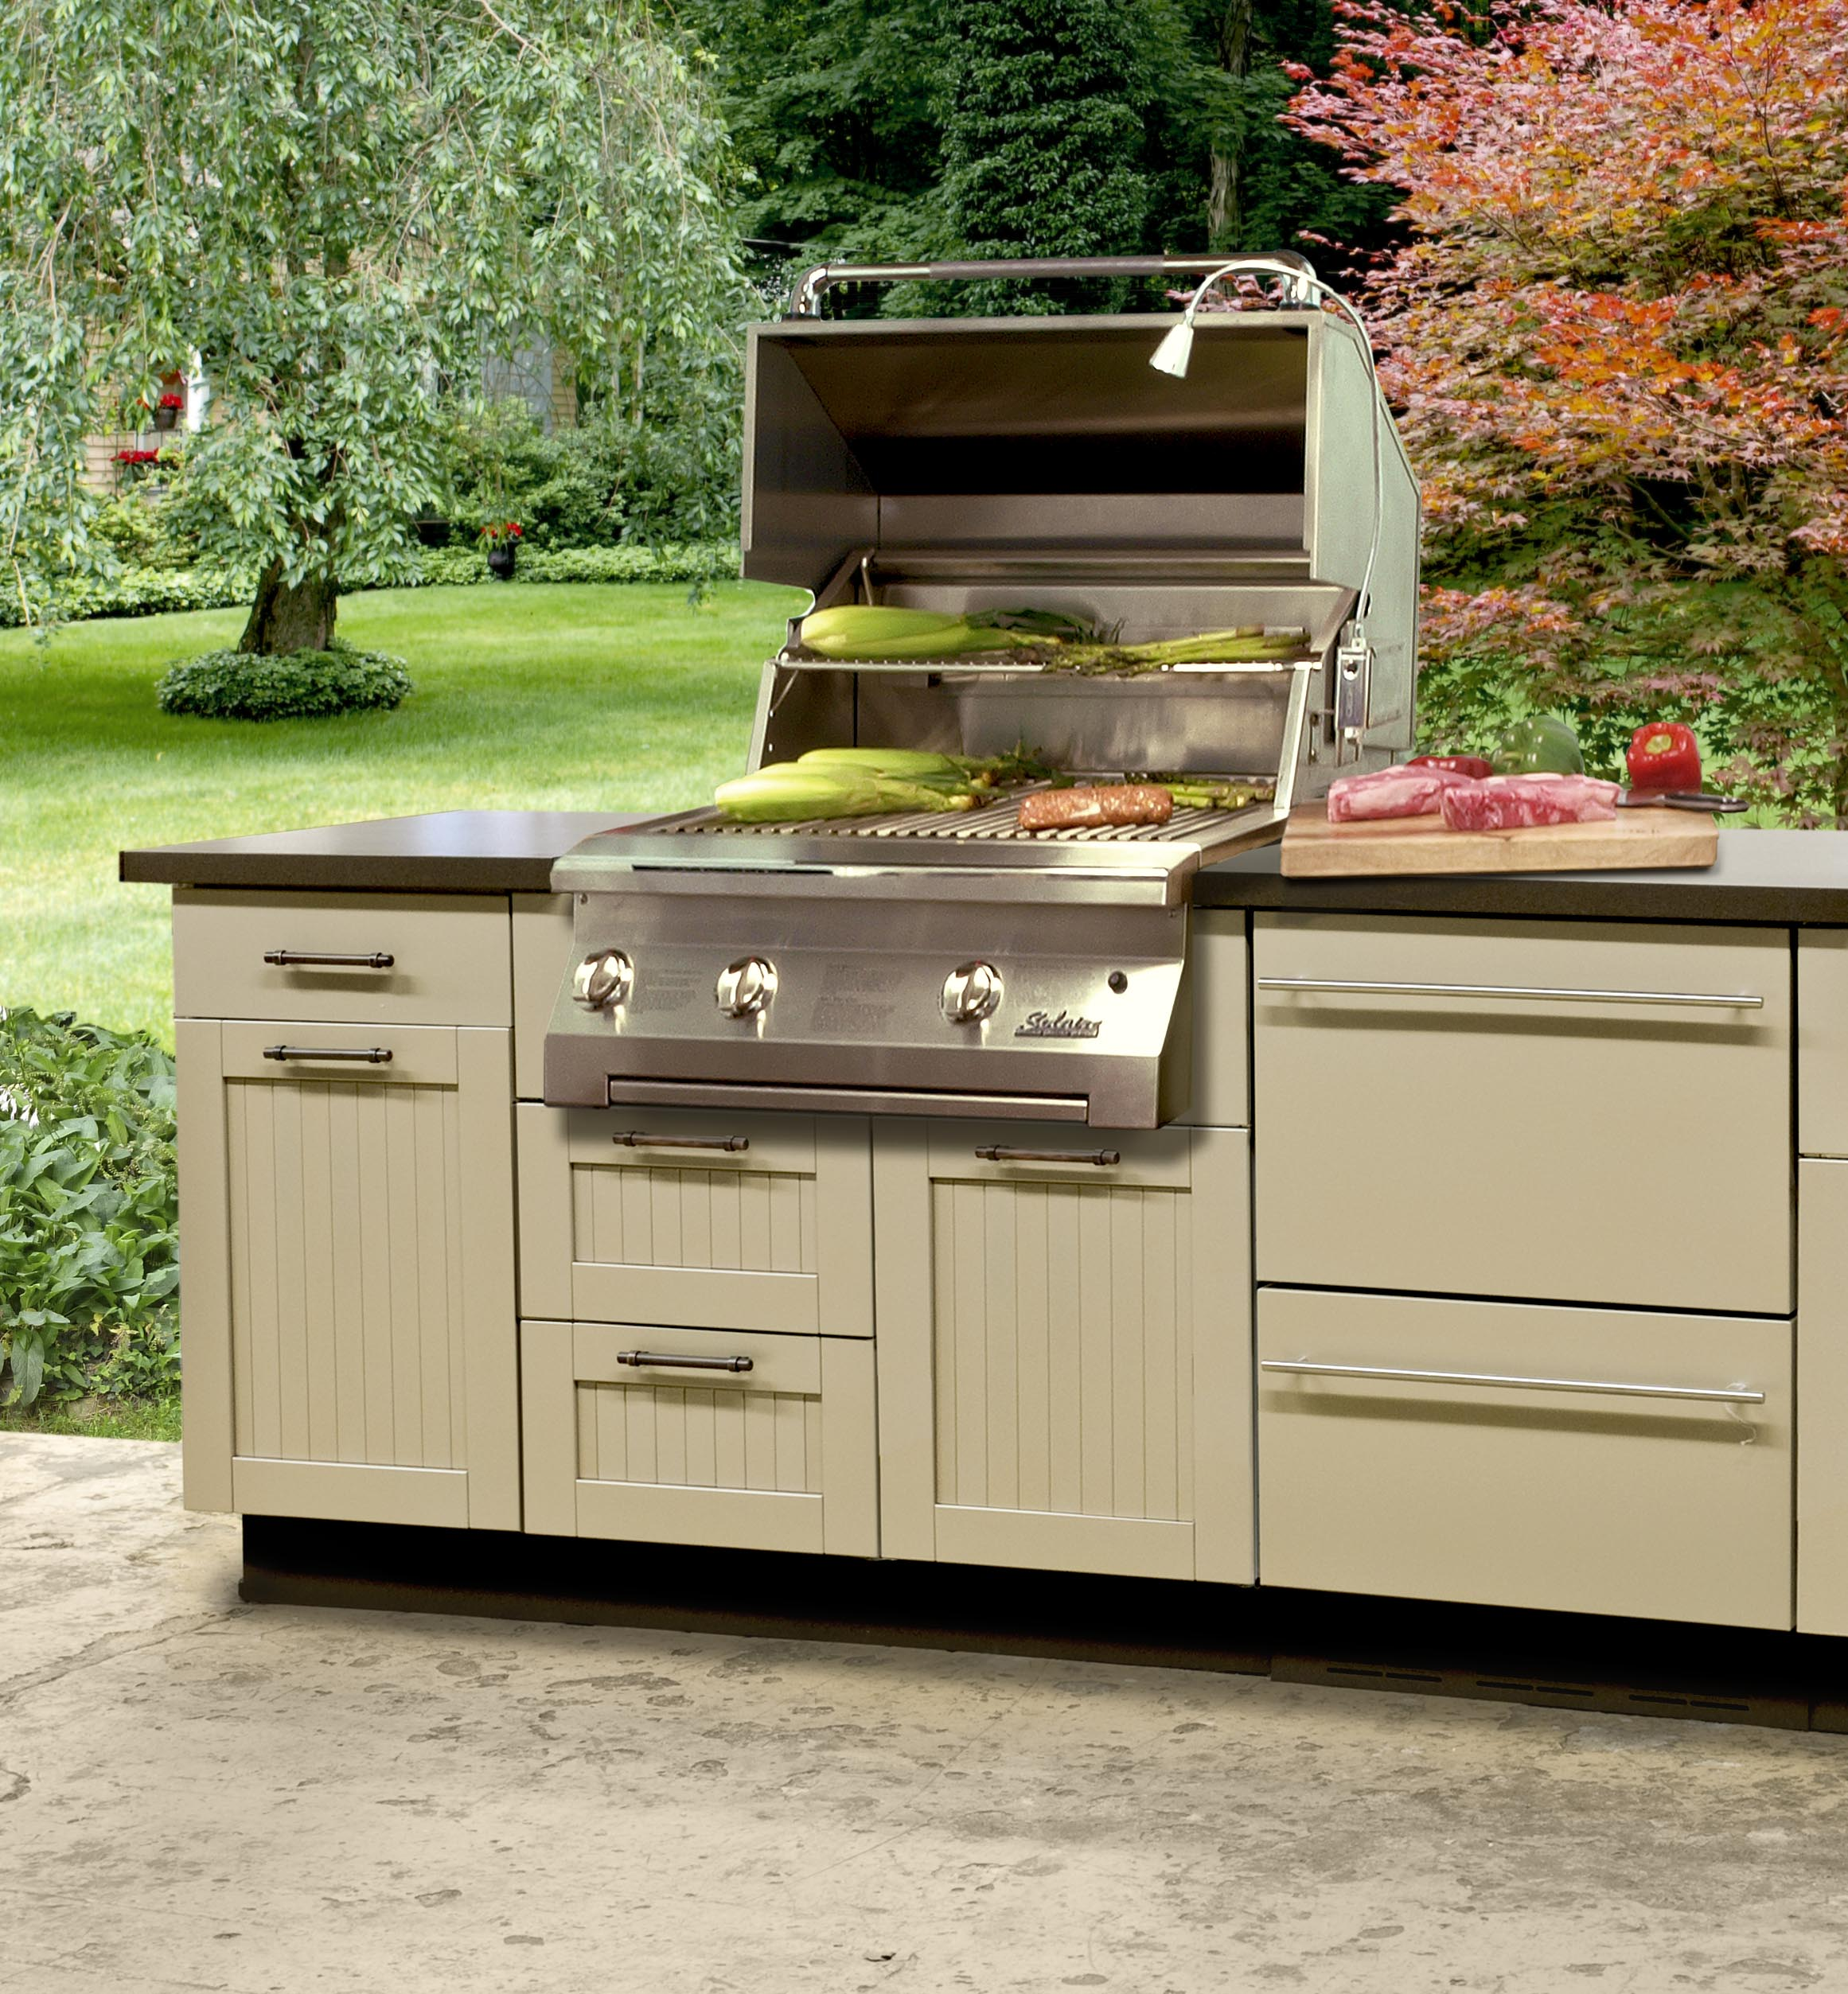 Danver stainless steel cabinetry kbtribechat for Outdoor kitchen cabinet plans